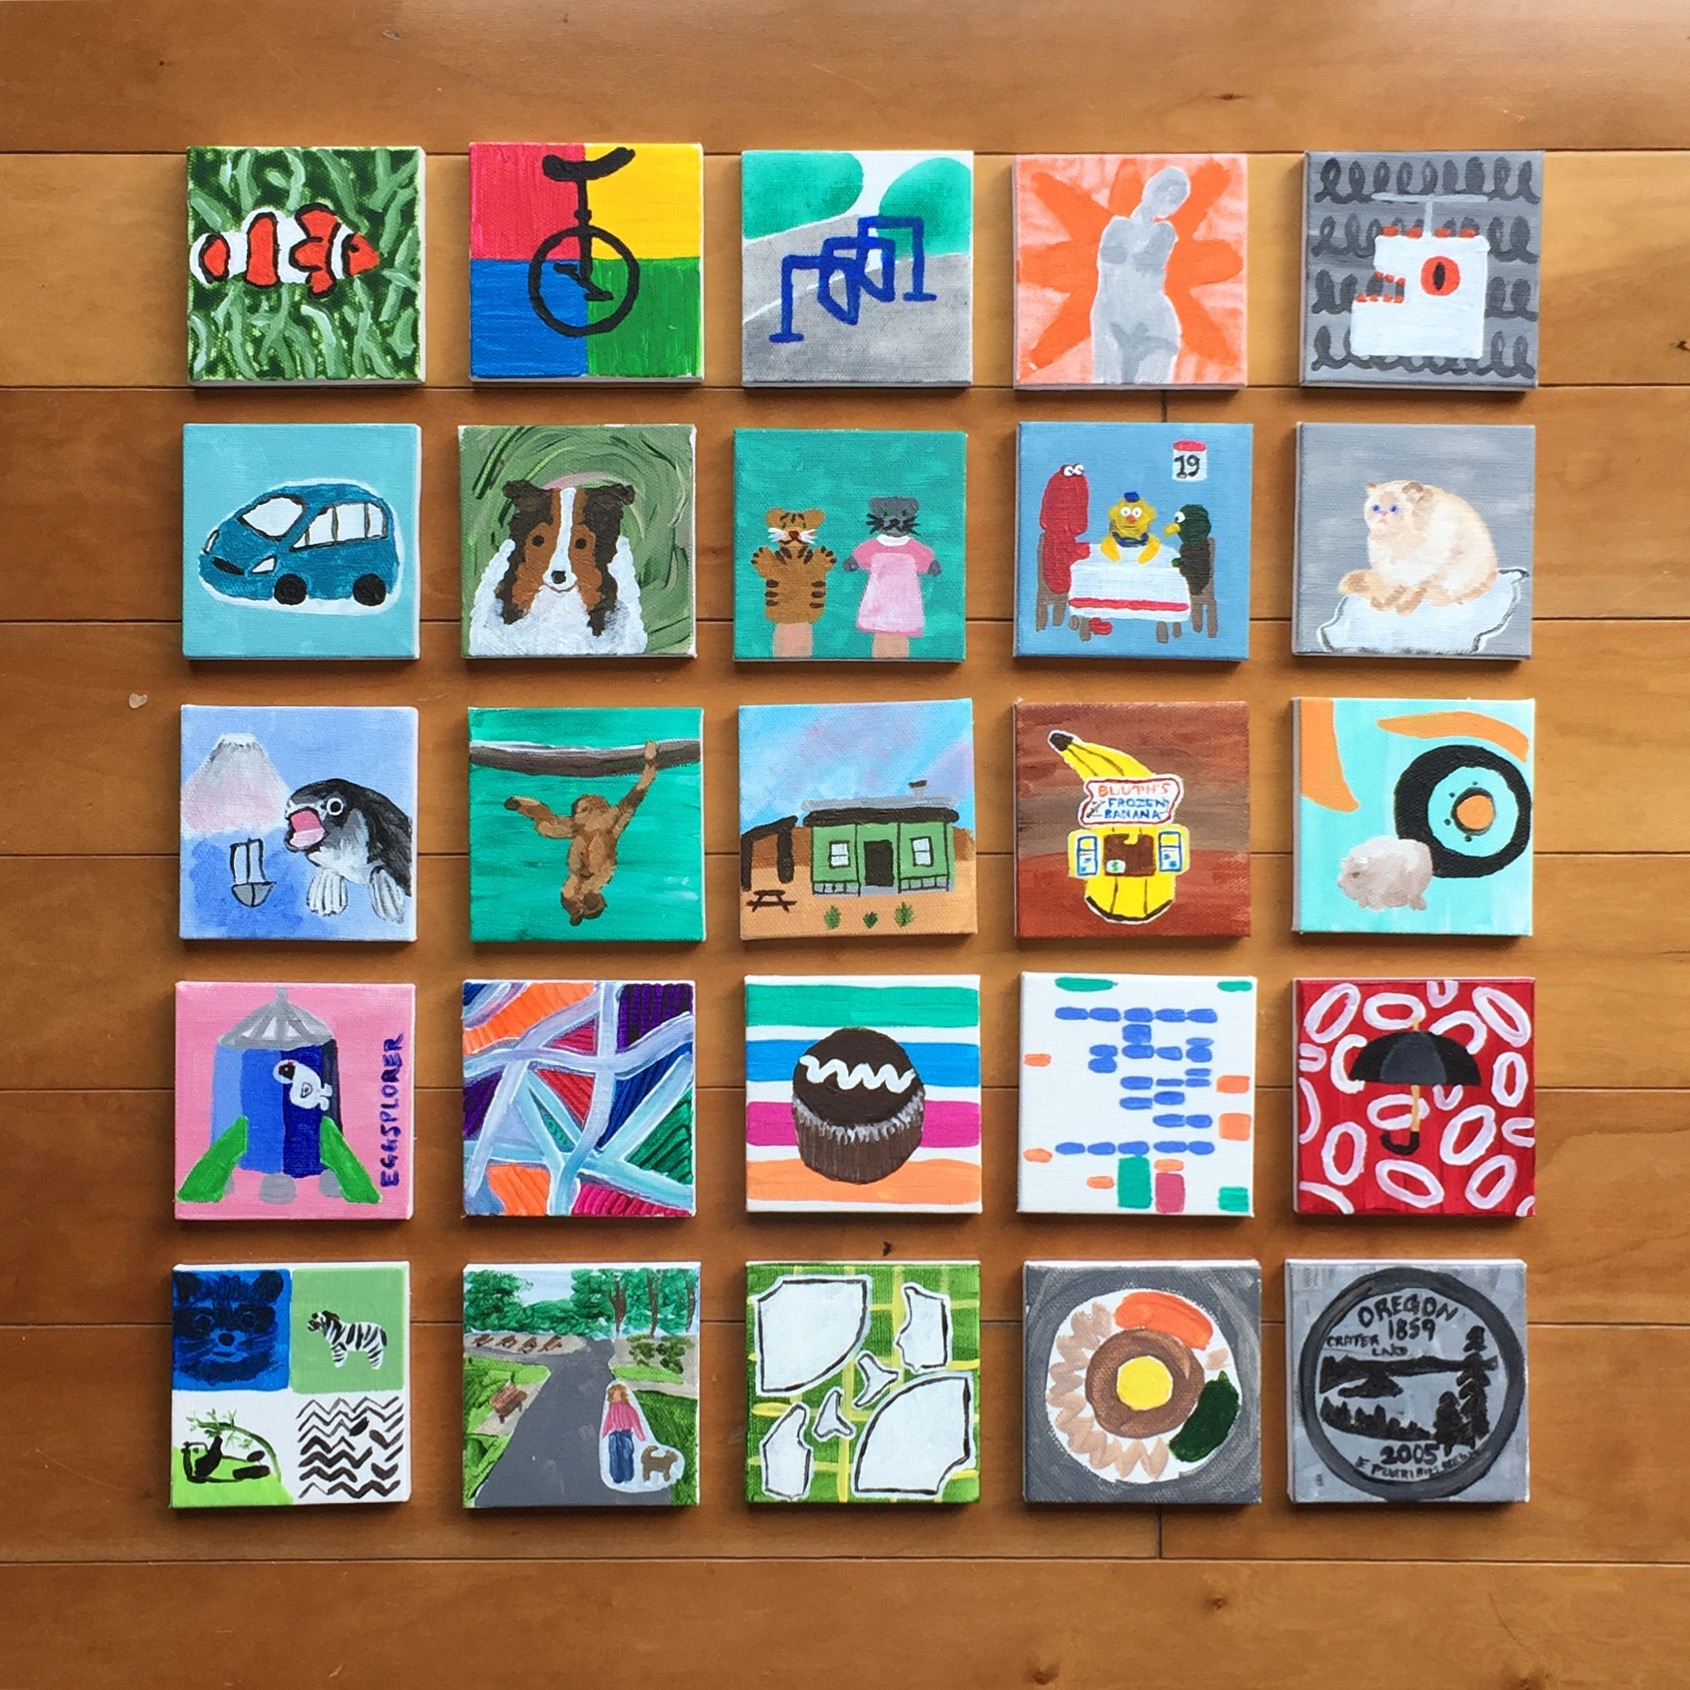 The 100 Day Project 2017: Painting Tiny Canvases (Days 1-25)